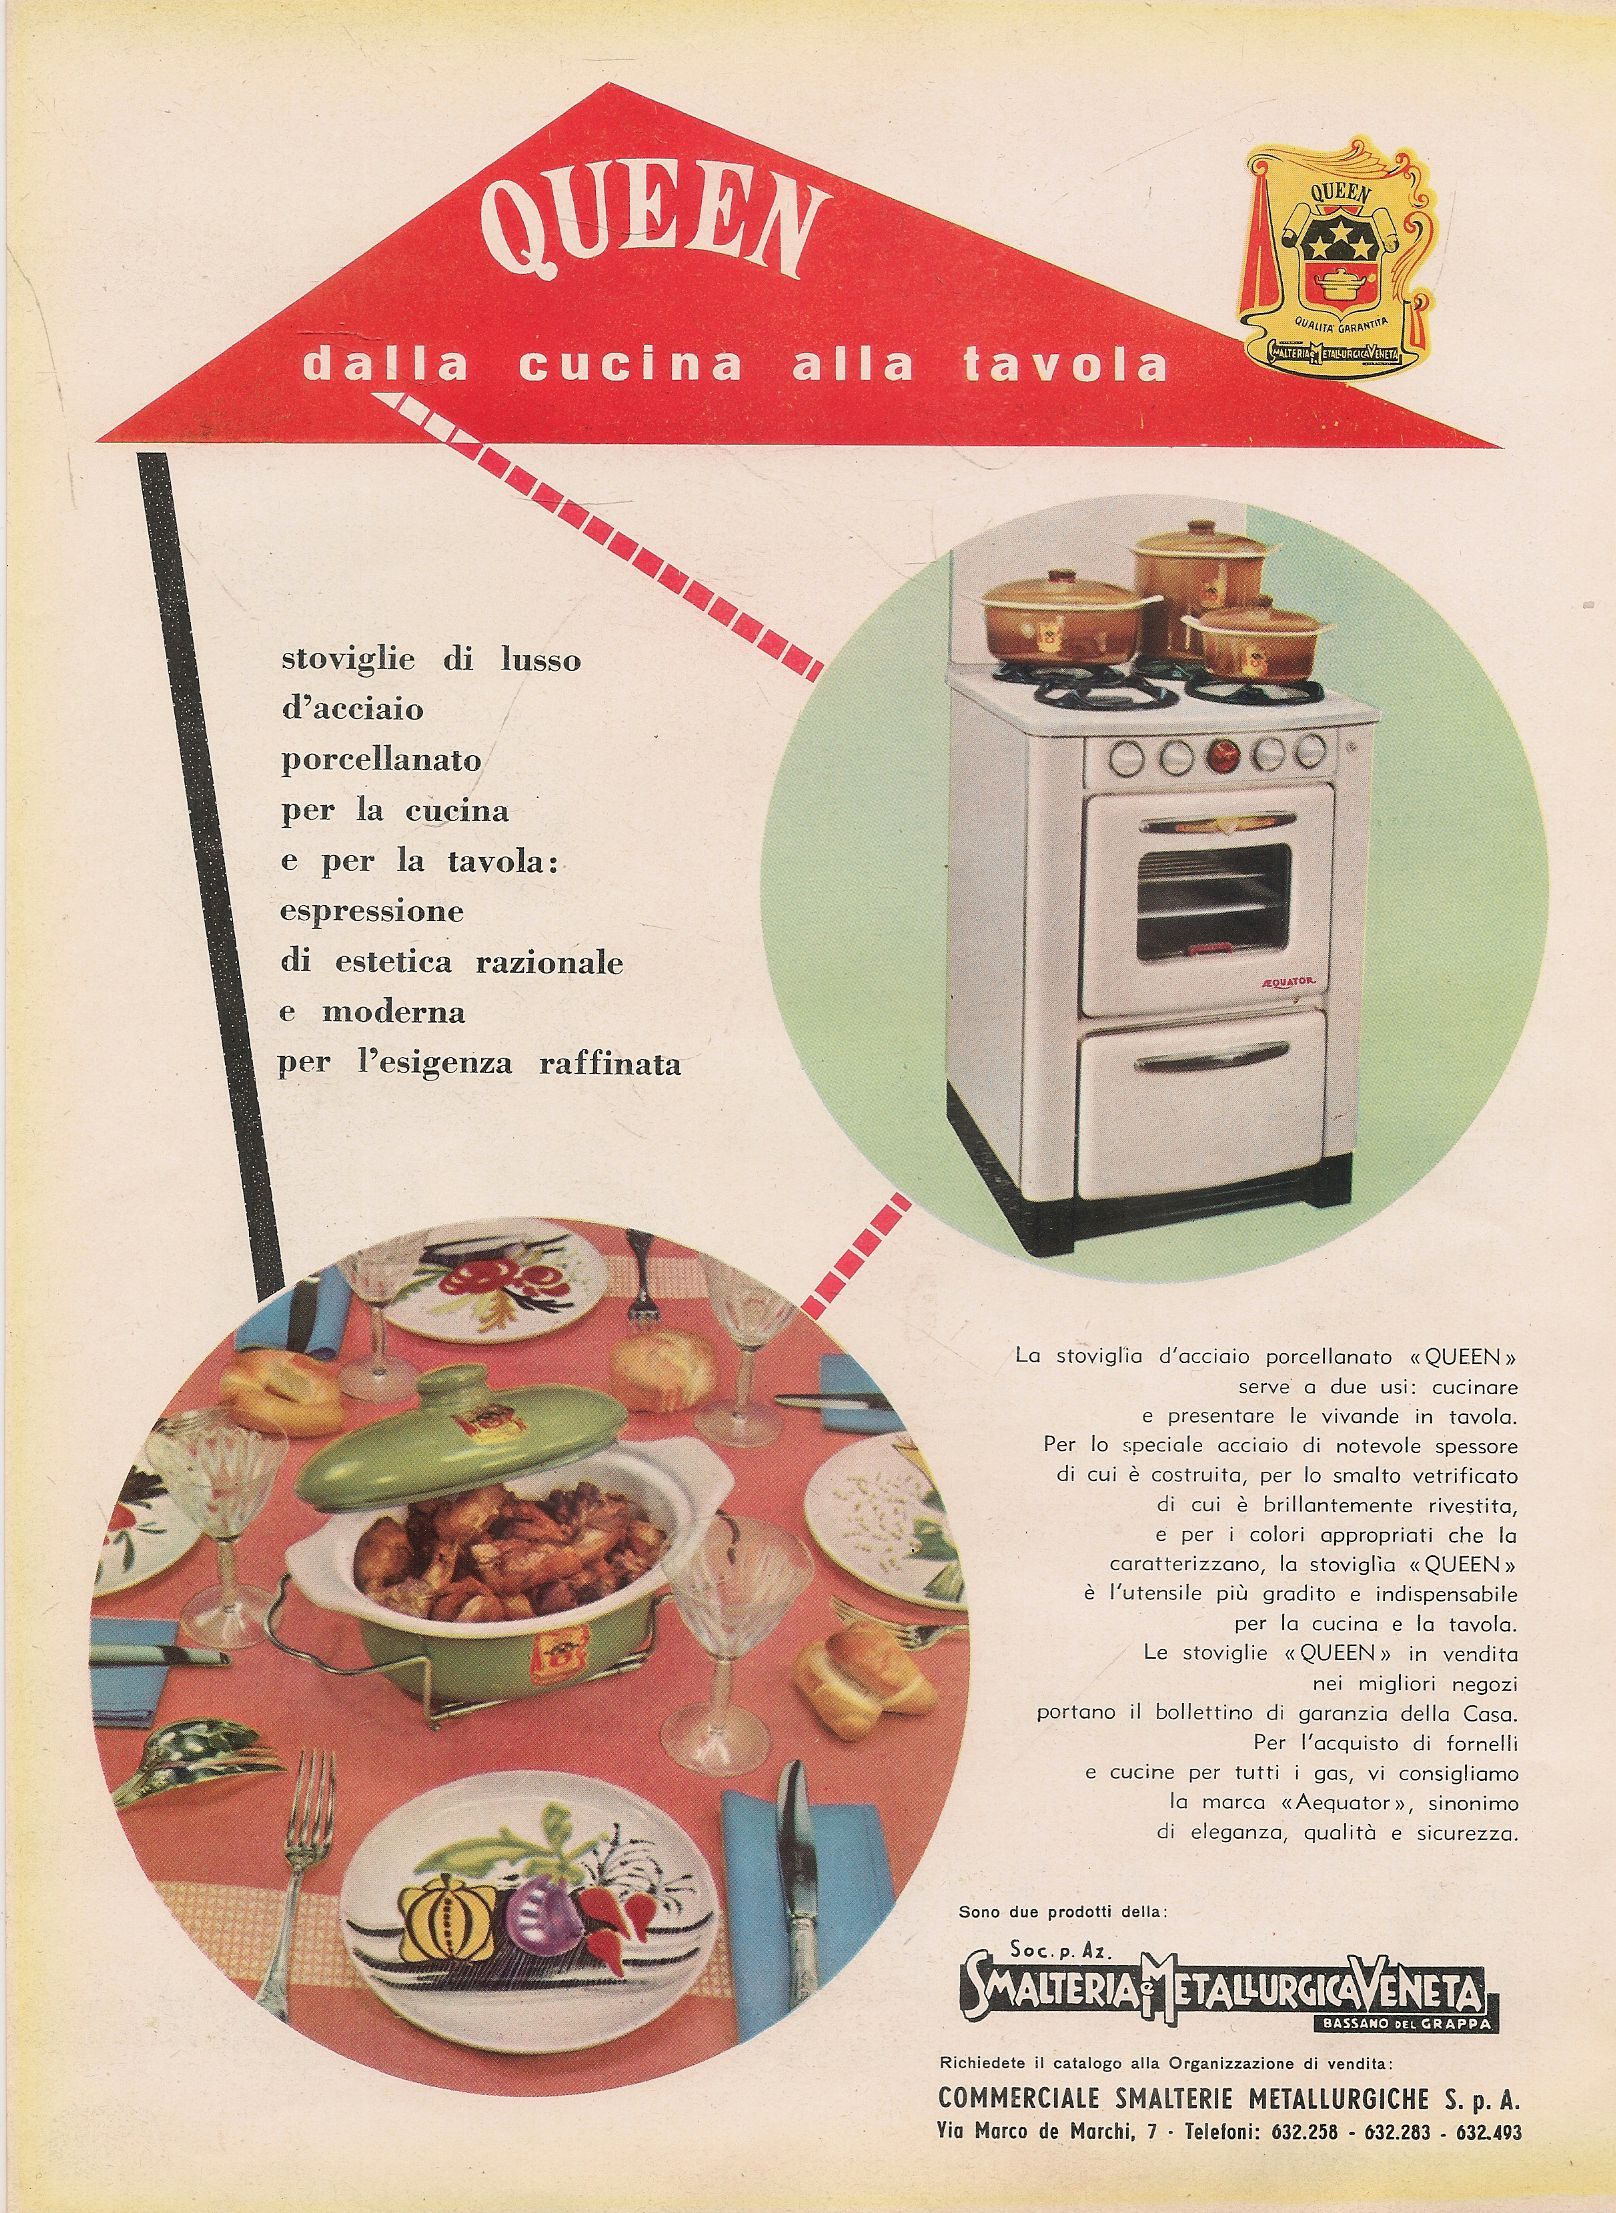 QUEEN. DALLA CUCINA ALLA TAVOLA - SMALTERIA METALLURGICA VENETA - ADVERTISING